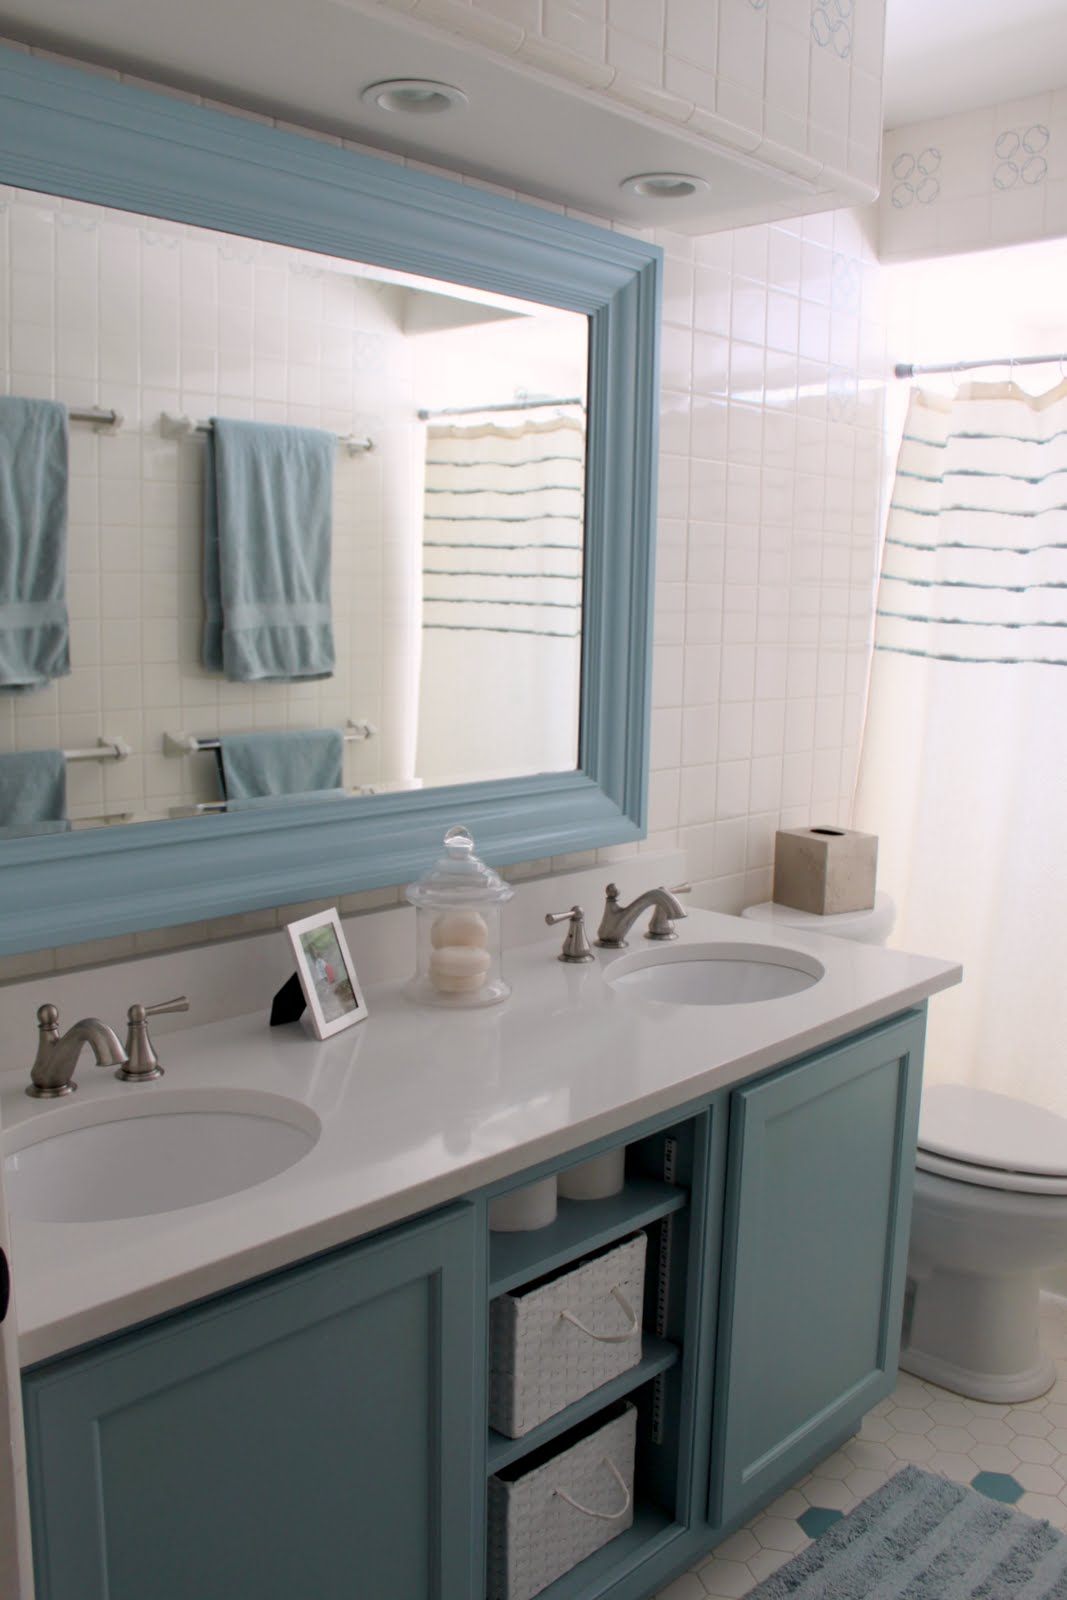 designs made the bathroom vanity he also made the kitchen cabinets